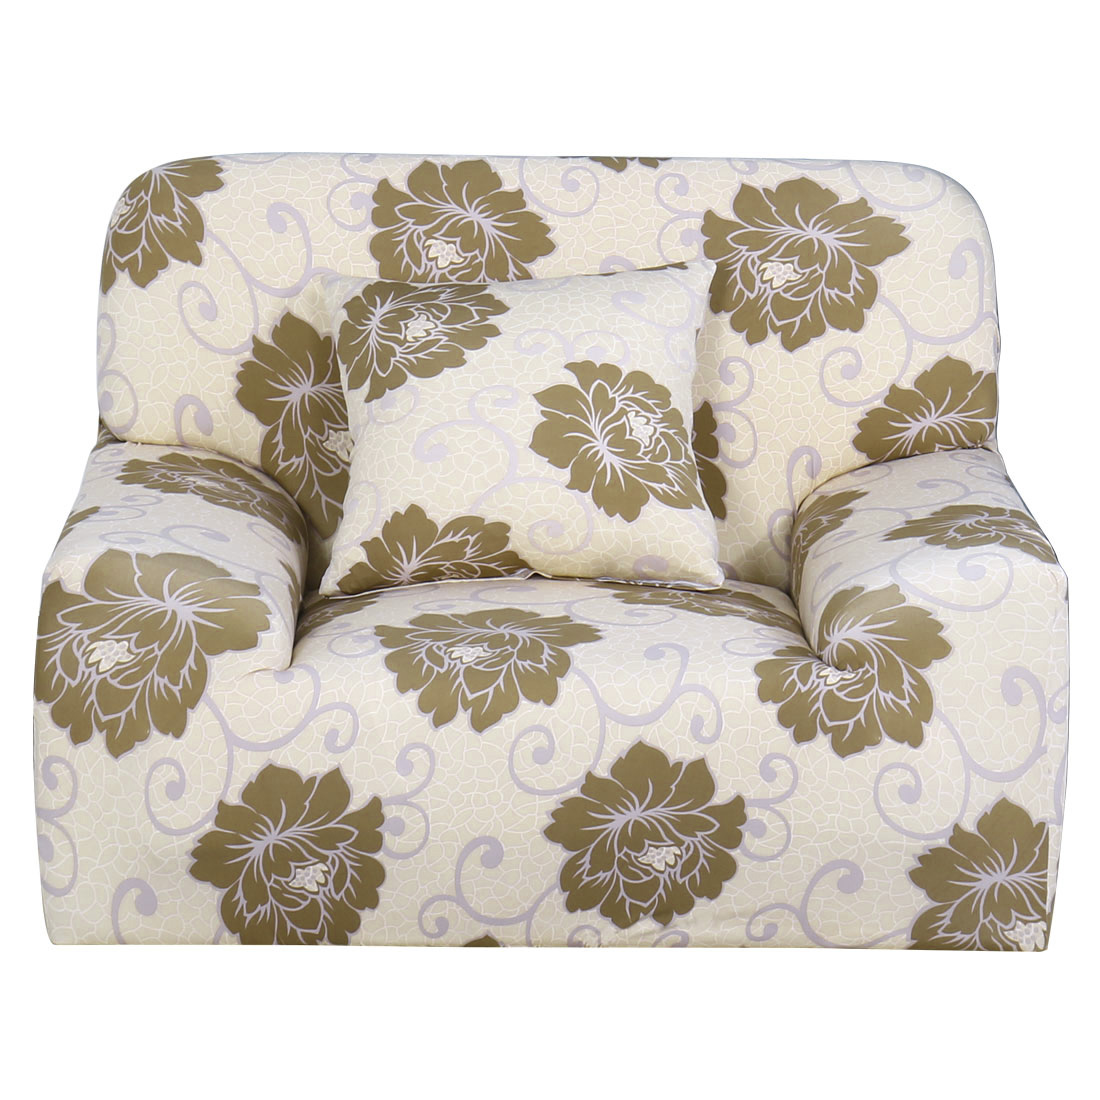 Household Polyester Flower Pattern Elastic Sofa Chair Cover Slipcover Protector 35-55 Inch